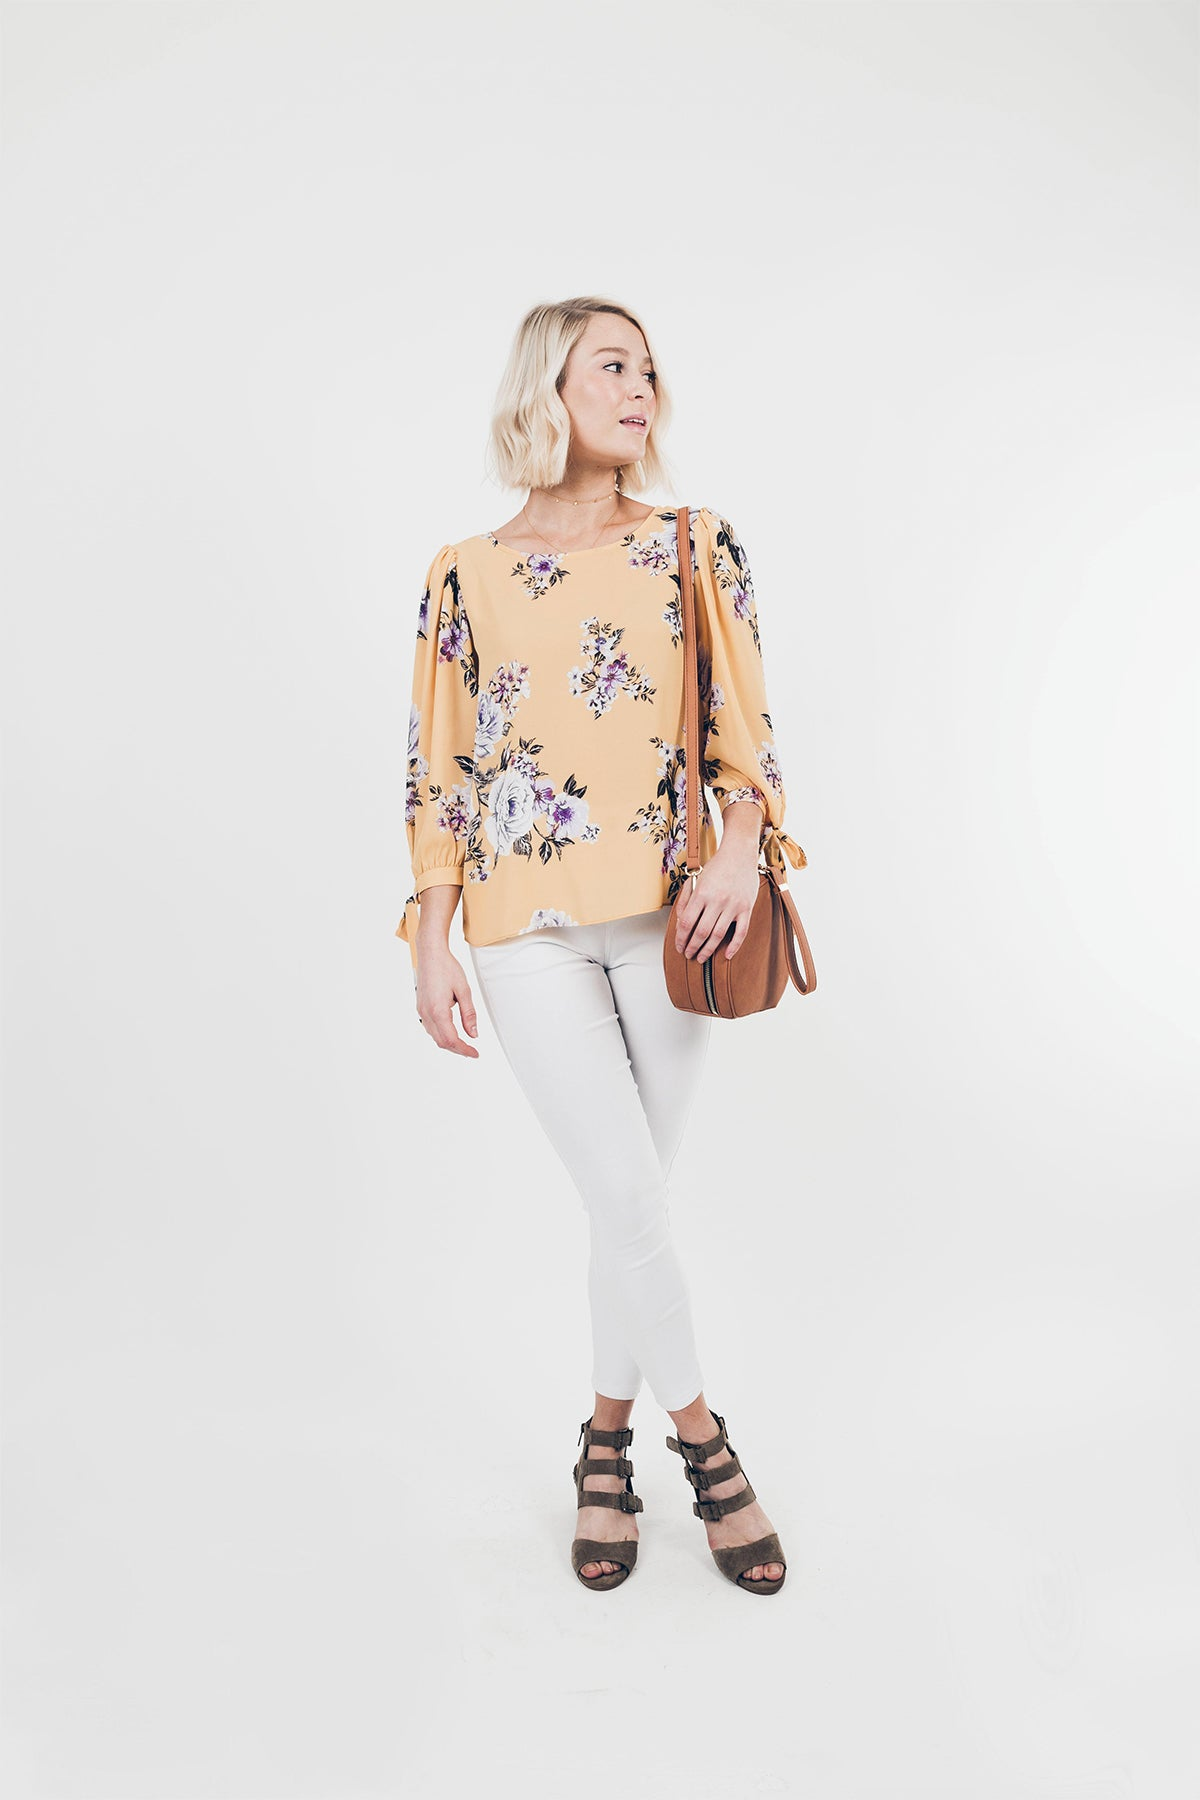 Everly: Shine Bright Floral Blouse